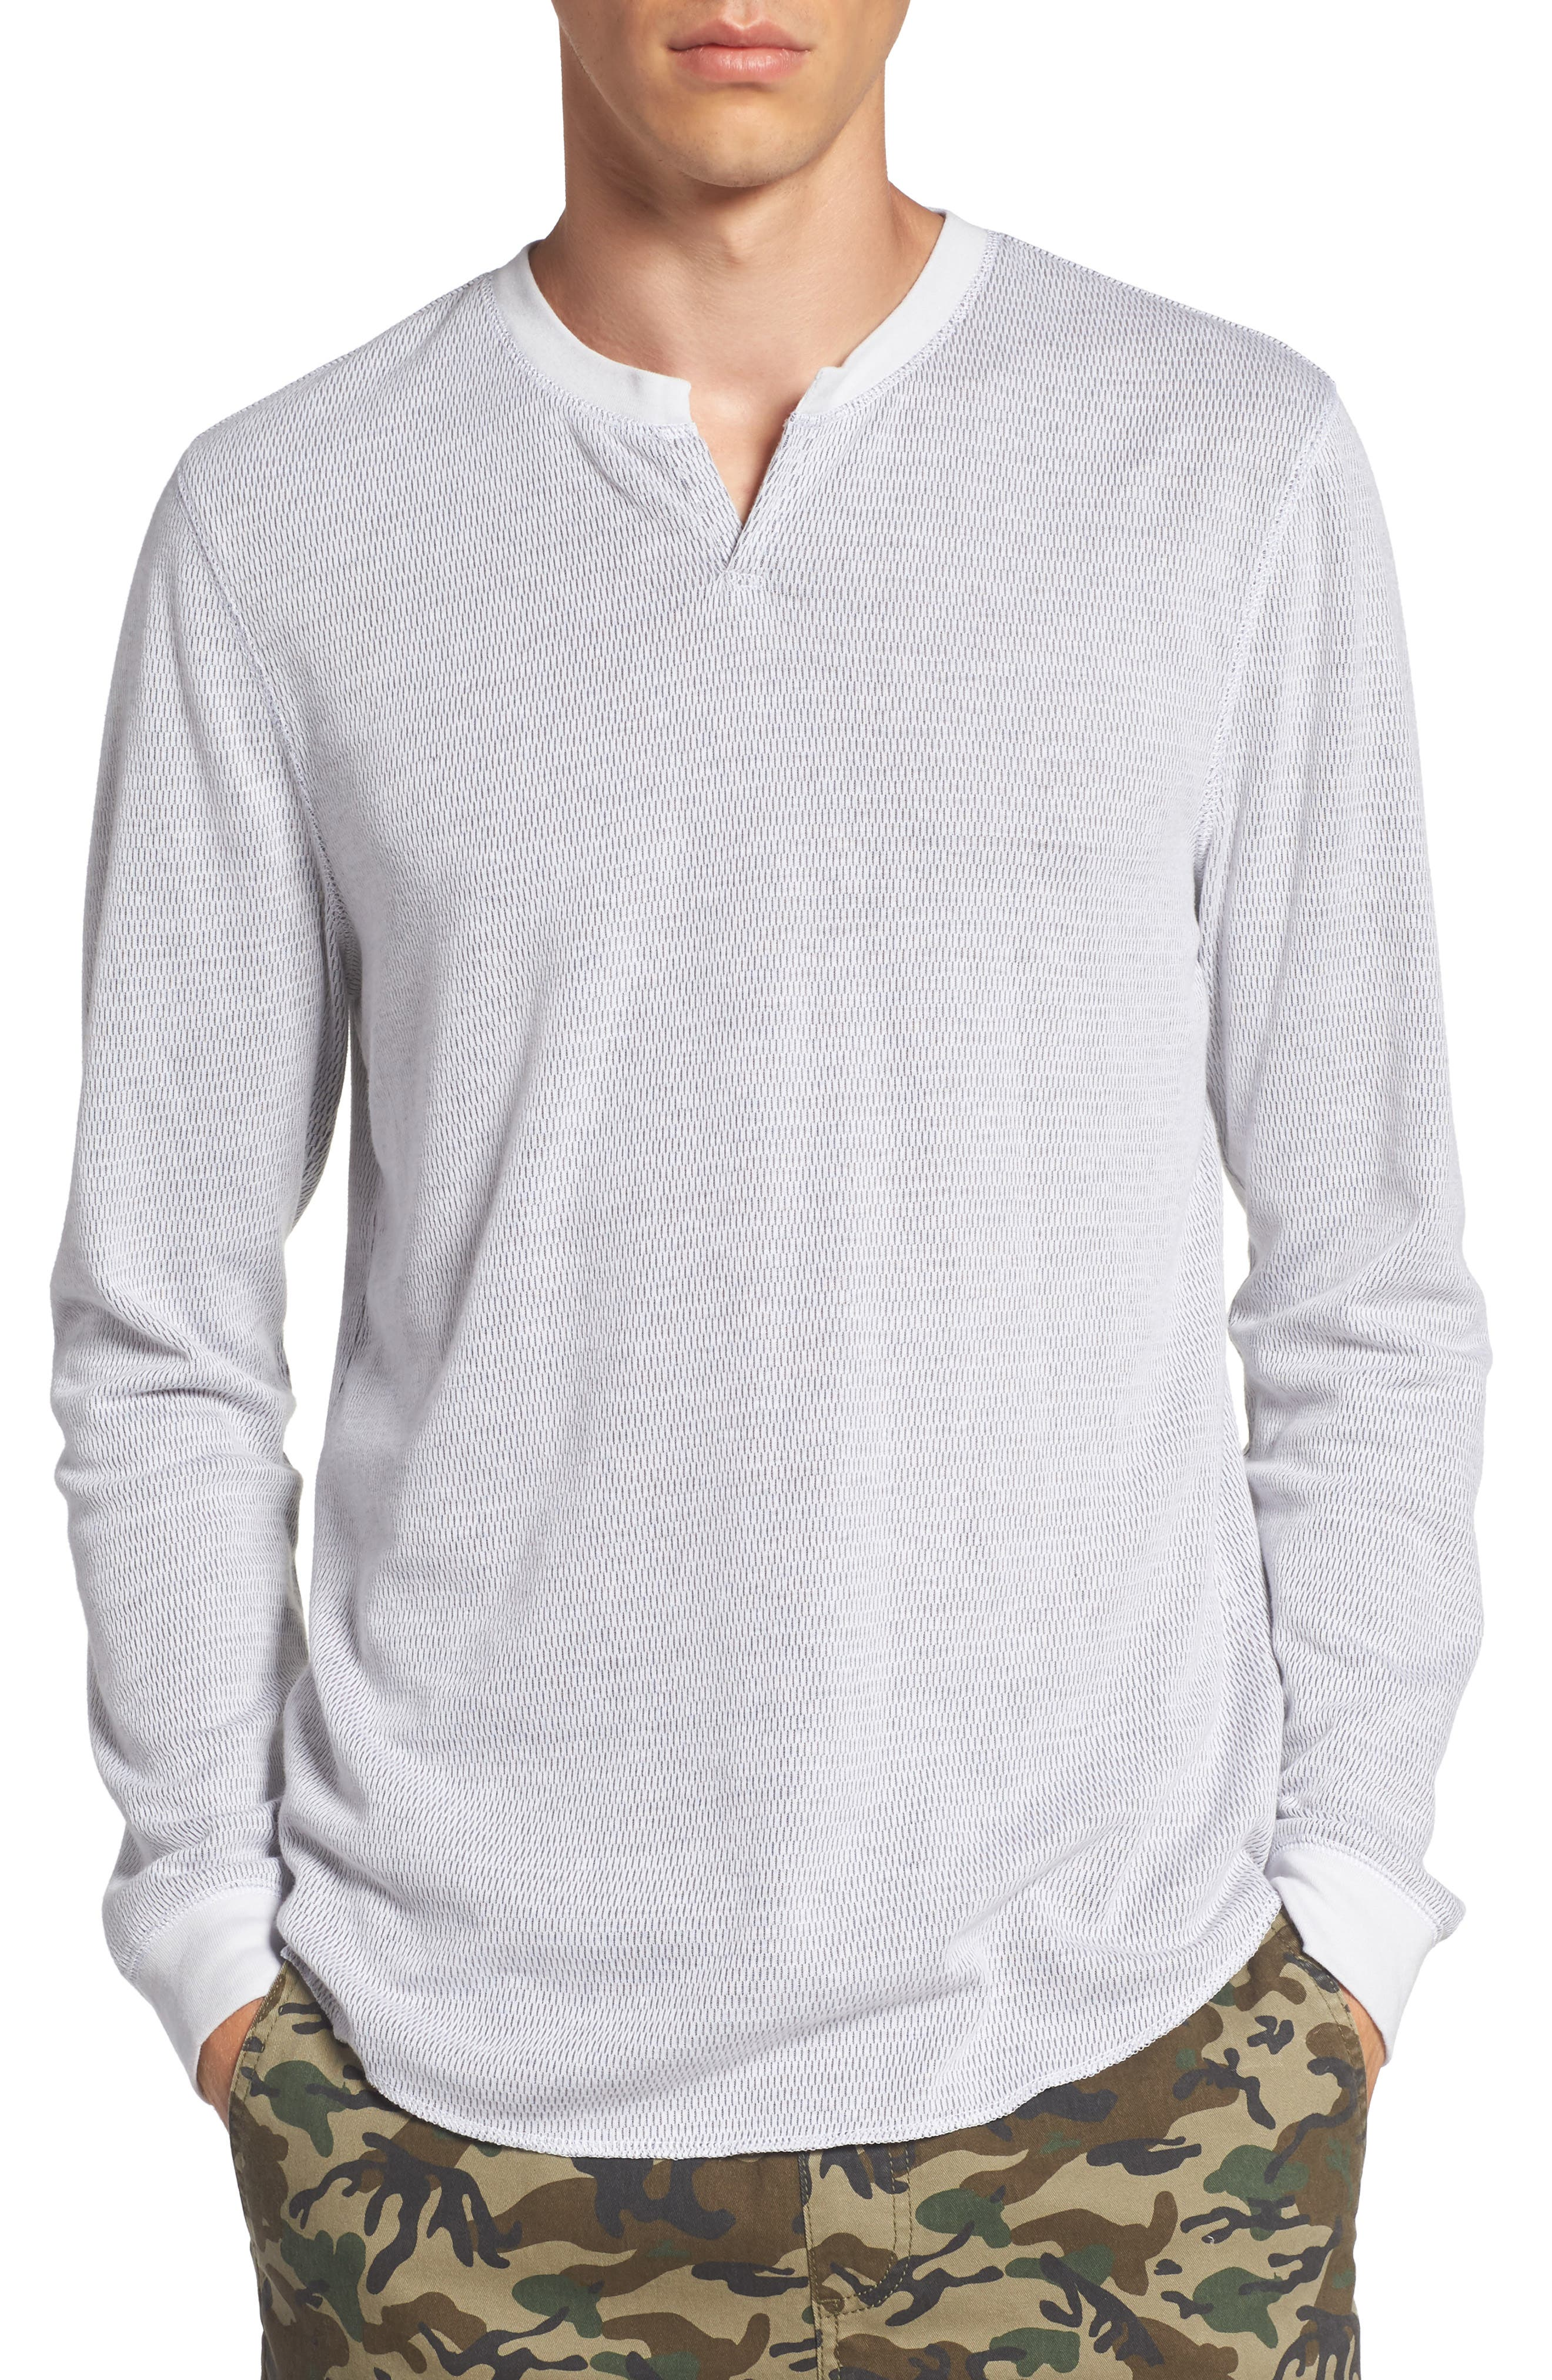 Main Image - The Rail Notch Neck Thermal T-Shirt (2 for $50)